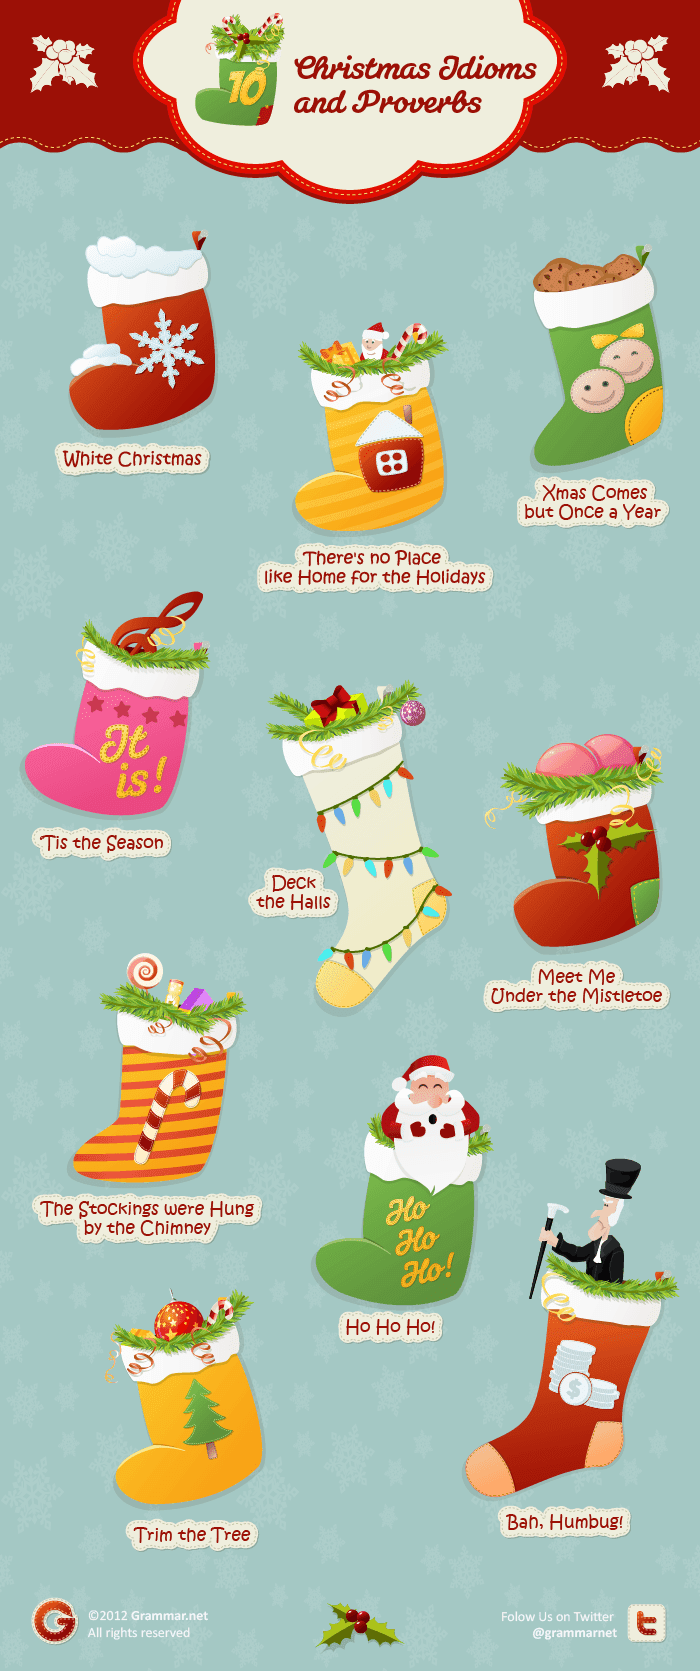 Christmas Idioms and Phrases Infographic